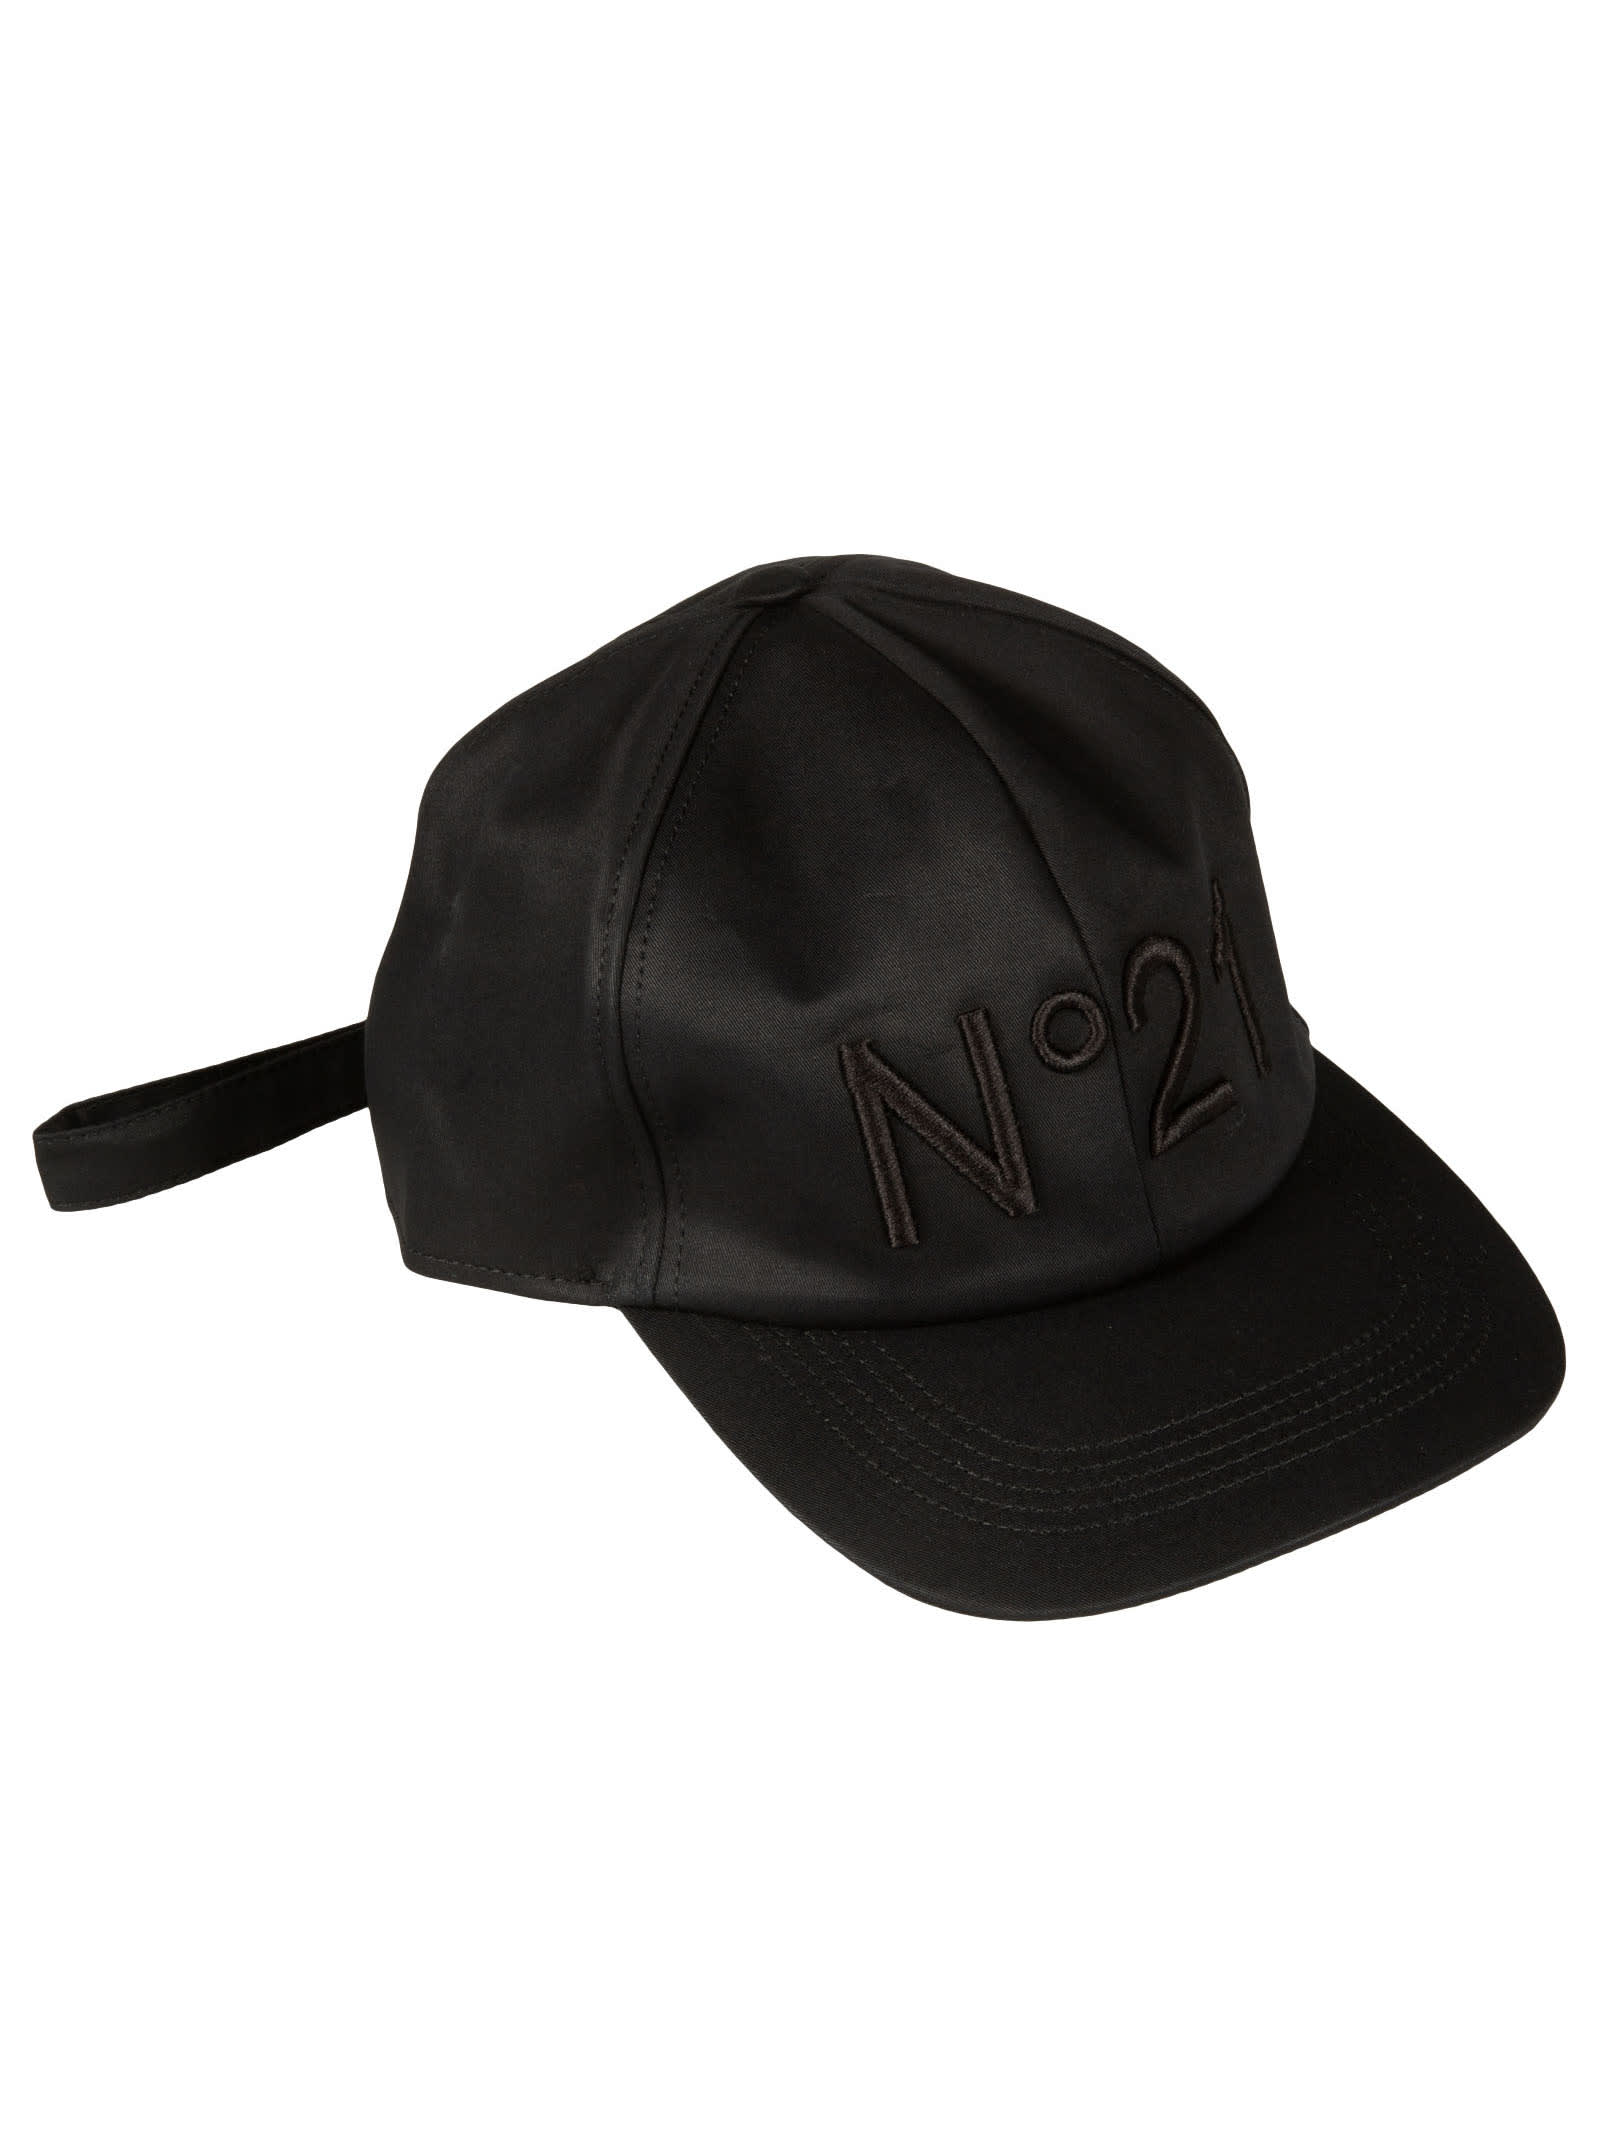 N°21 EMBROIDERED LOGO CAP